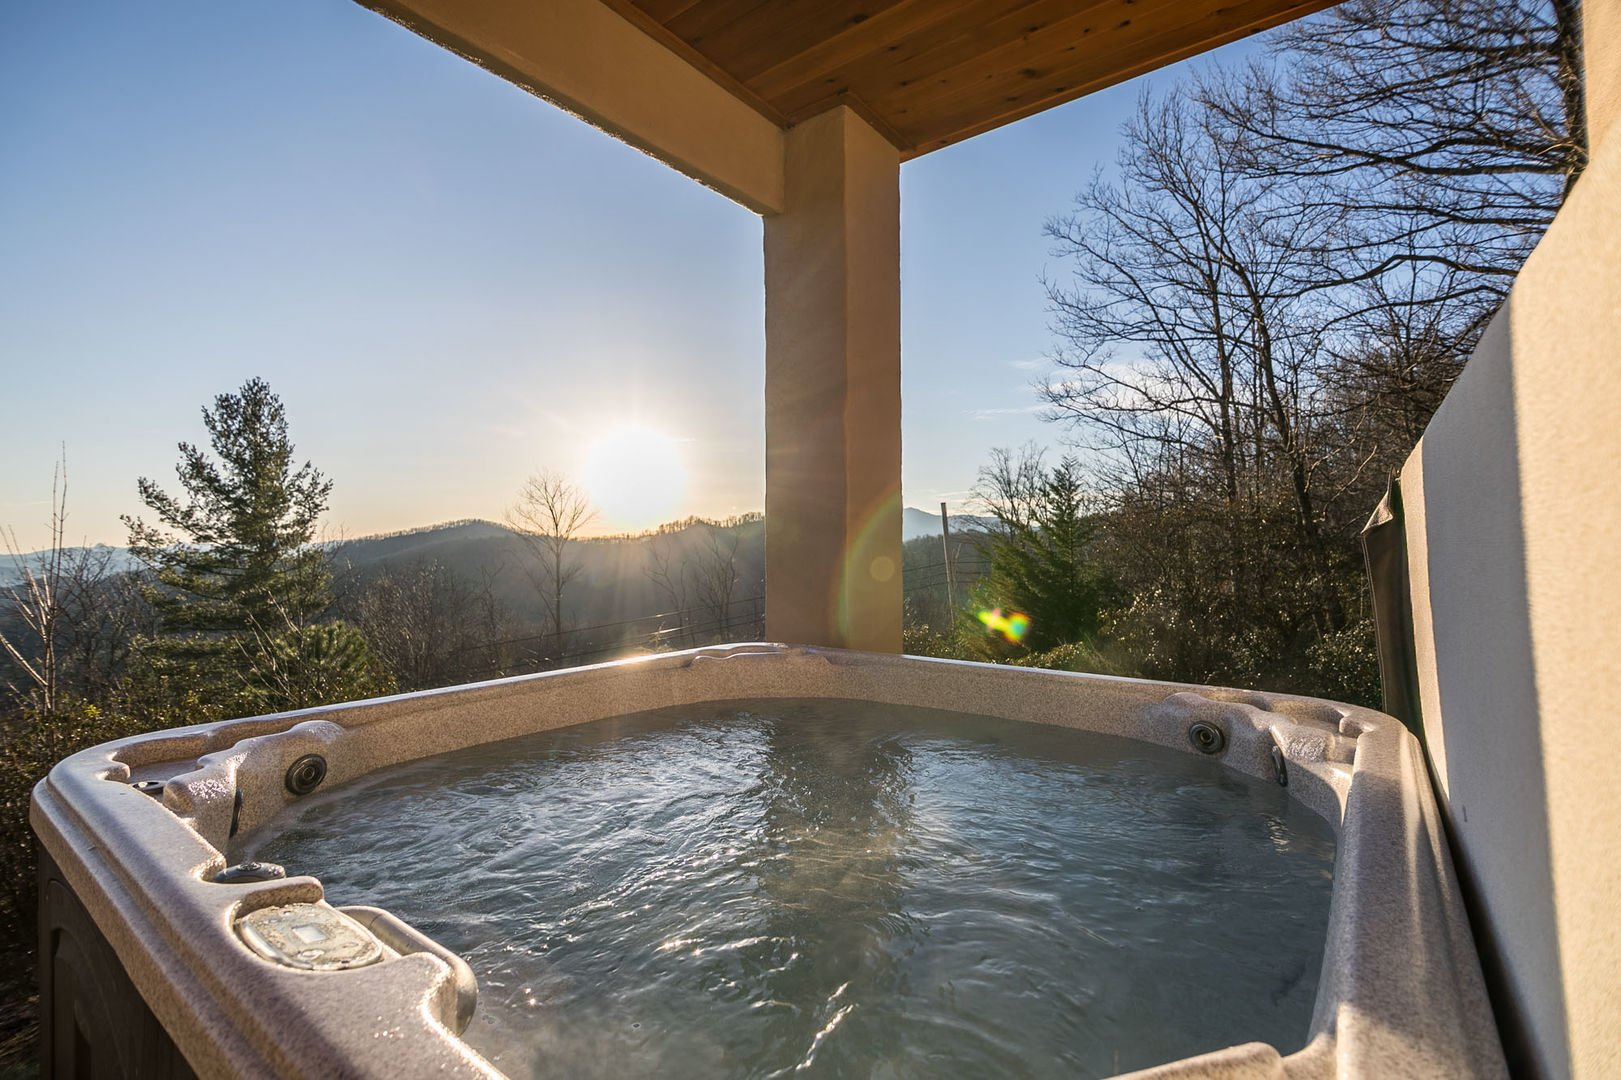 Hot tub on the lower deck